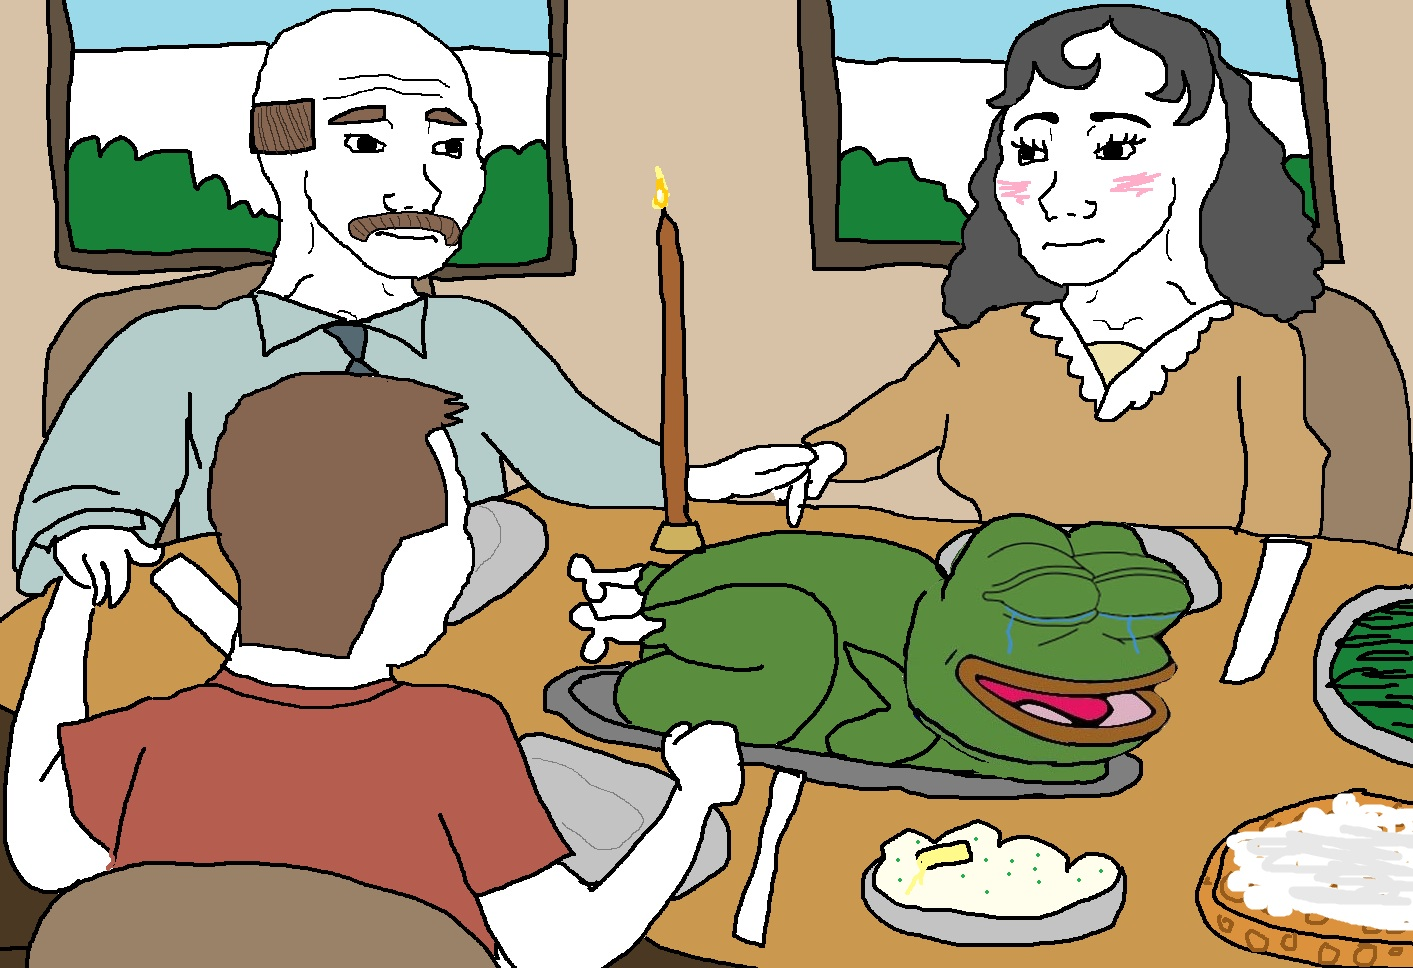 1ca feelsgiving with pepe the frog pepe the frog know your meme,Know Your Meme Pepe